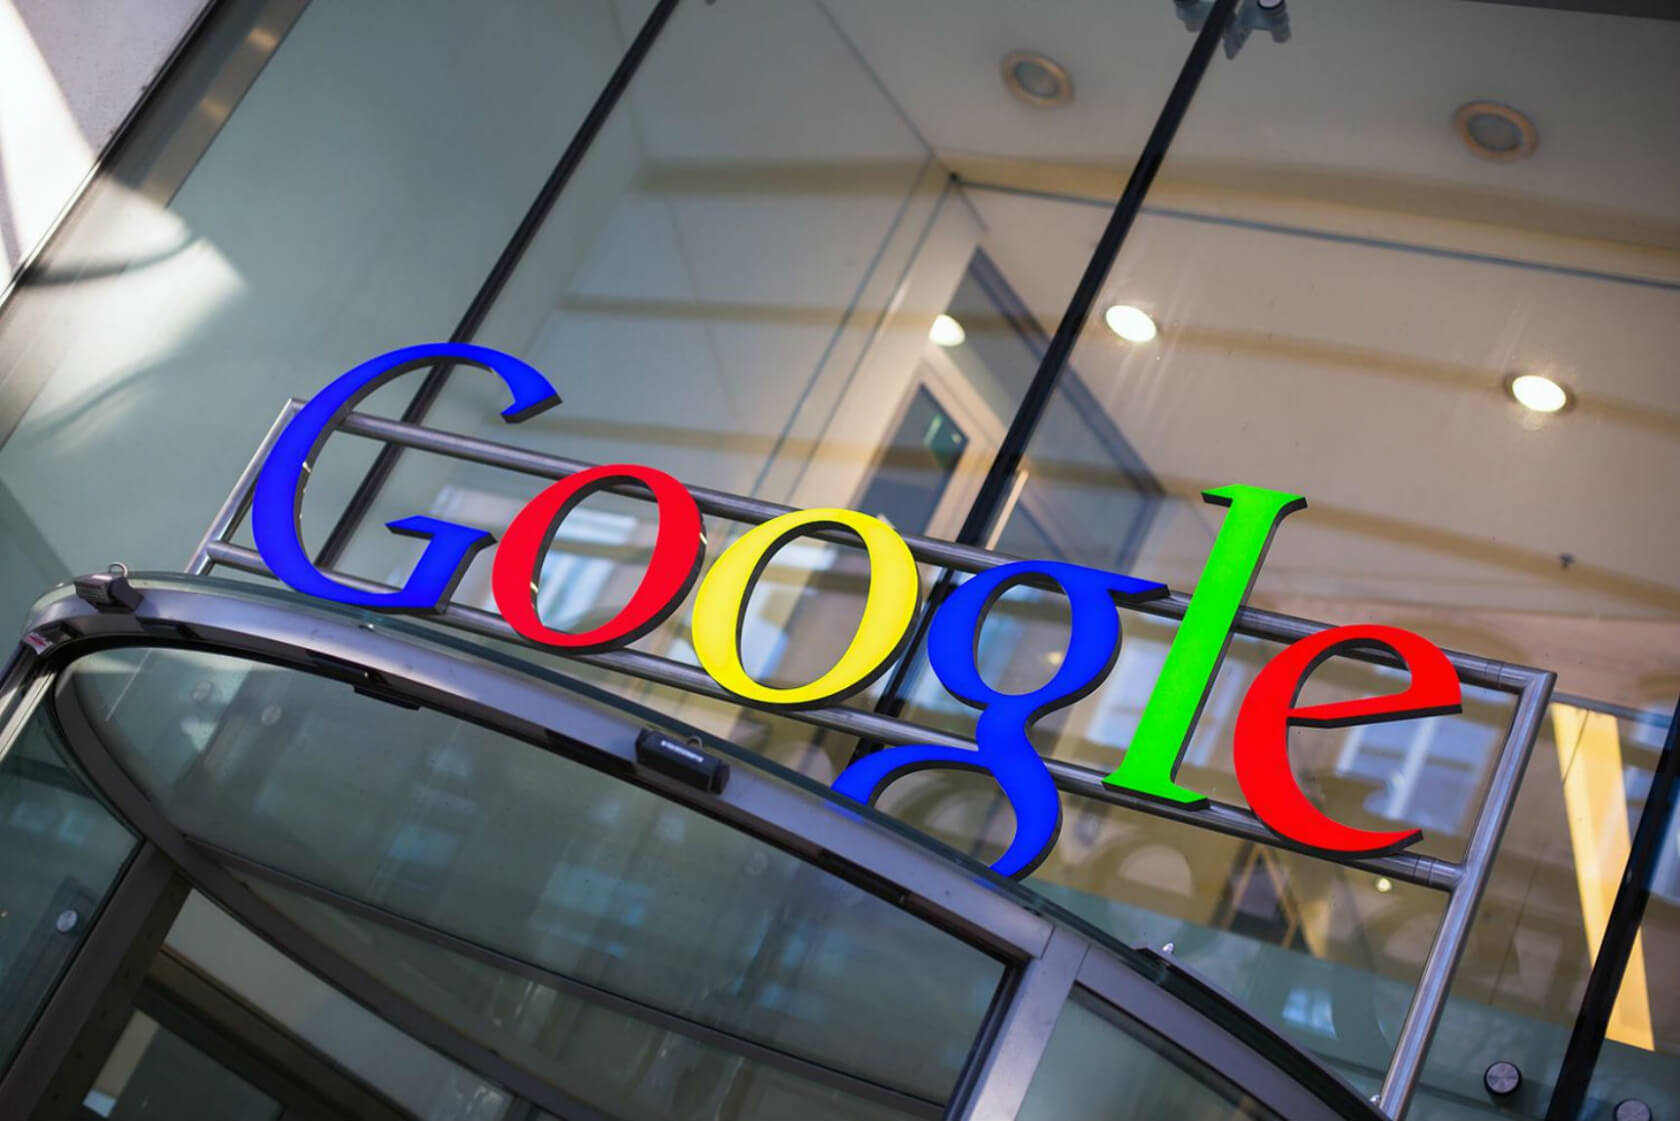 Google faces United Kingdom class action over iPhone data snooping